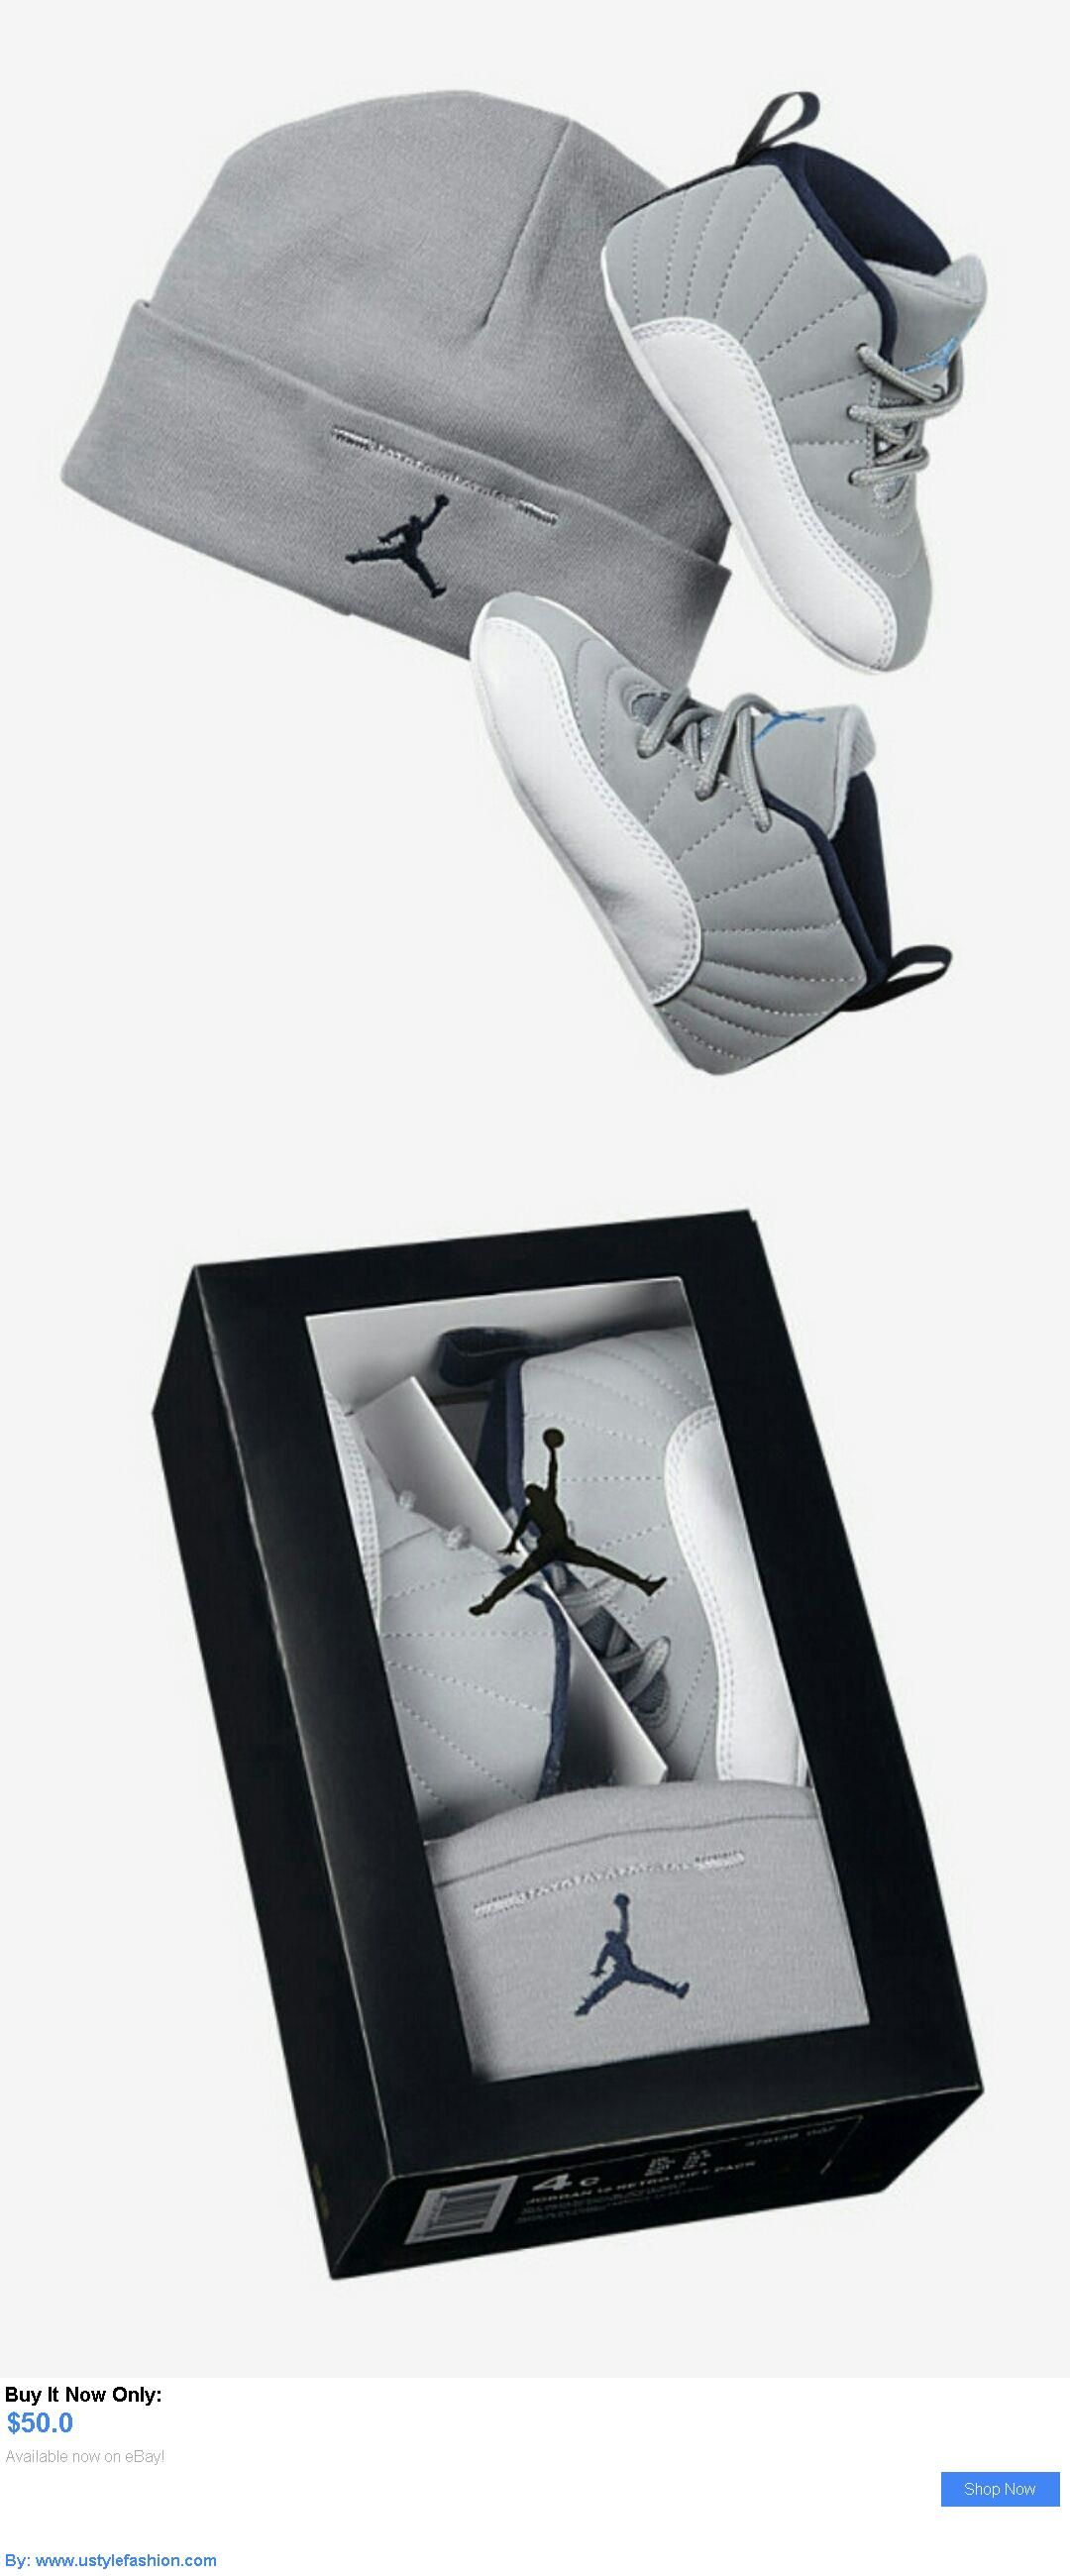 7dea2a73638b3 Baby girls clothing shoes and accessories  Air Jordan 12 Retro 378139-007 Infant  Gift Pack Wolf Grey University Blue Navy BUY IT NOW ONLY   50.0 ...